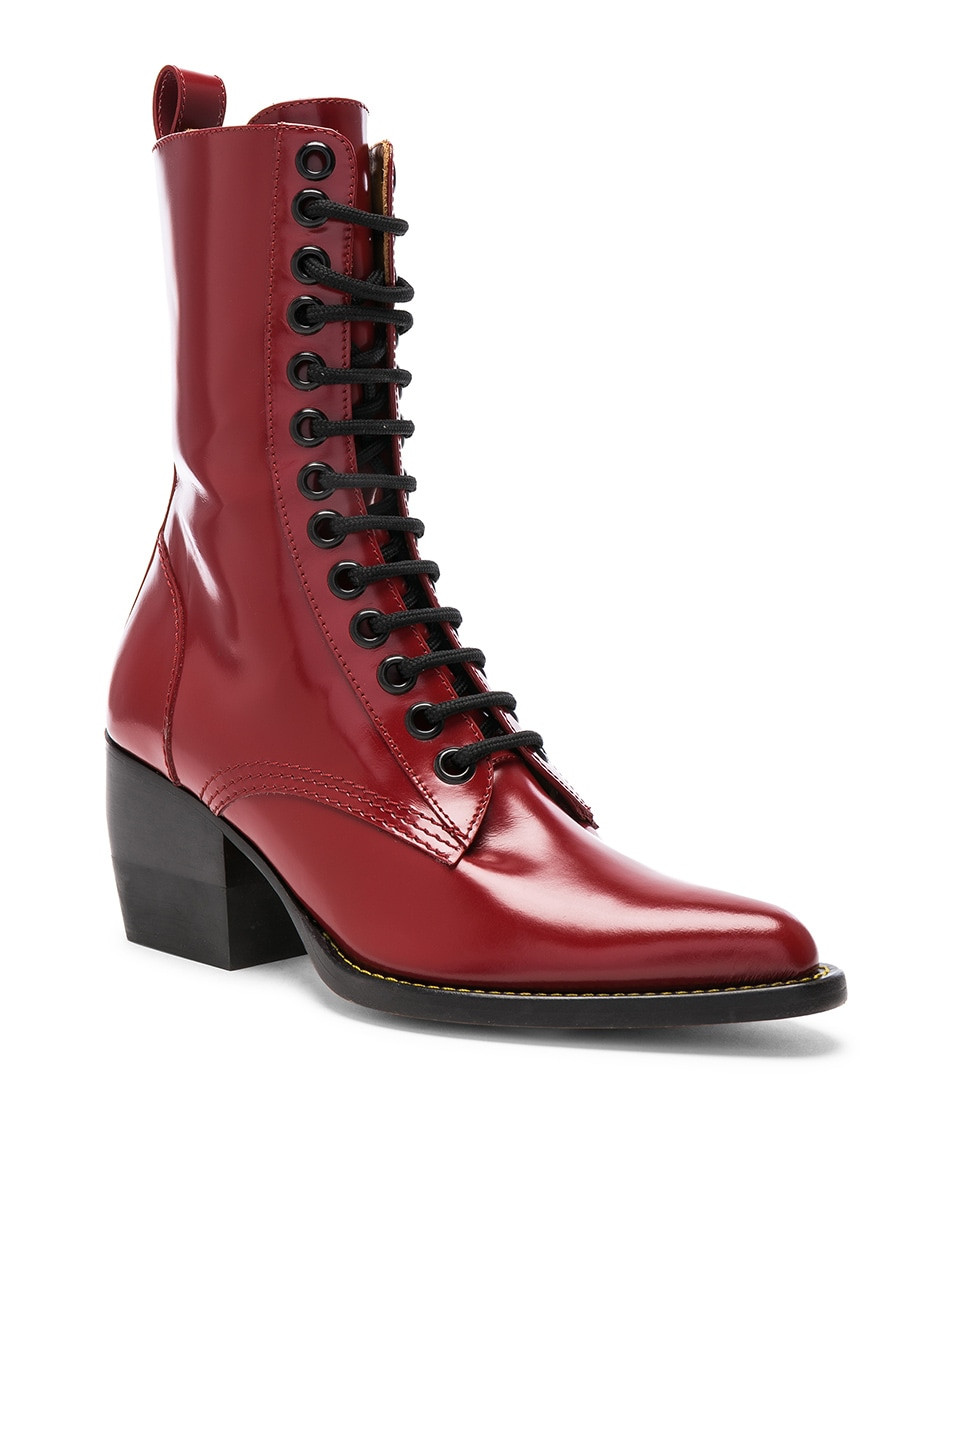 Image 2 of Chloe Rylee Shiny Leather Lace Up Buckle Boots in Intense Red